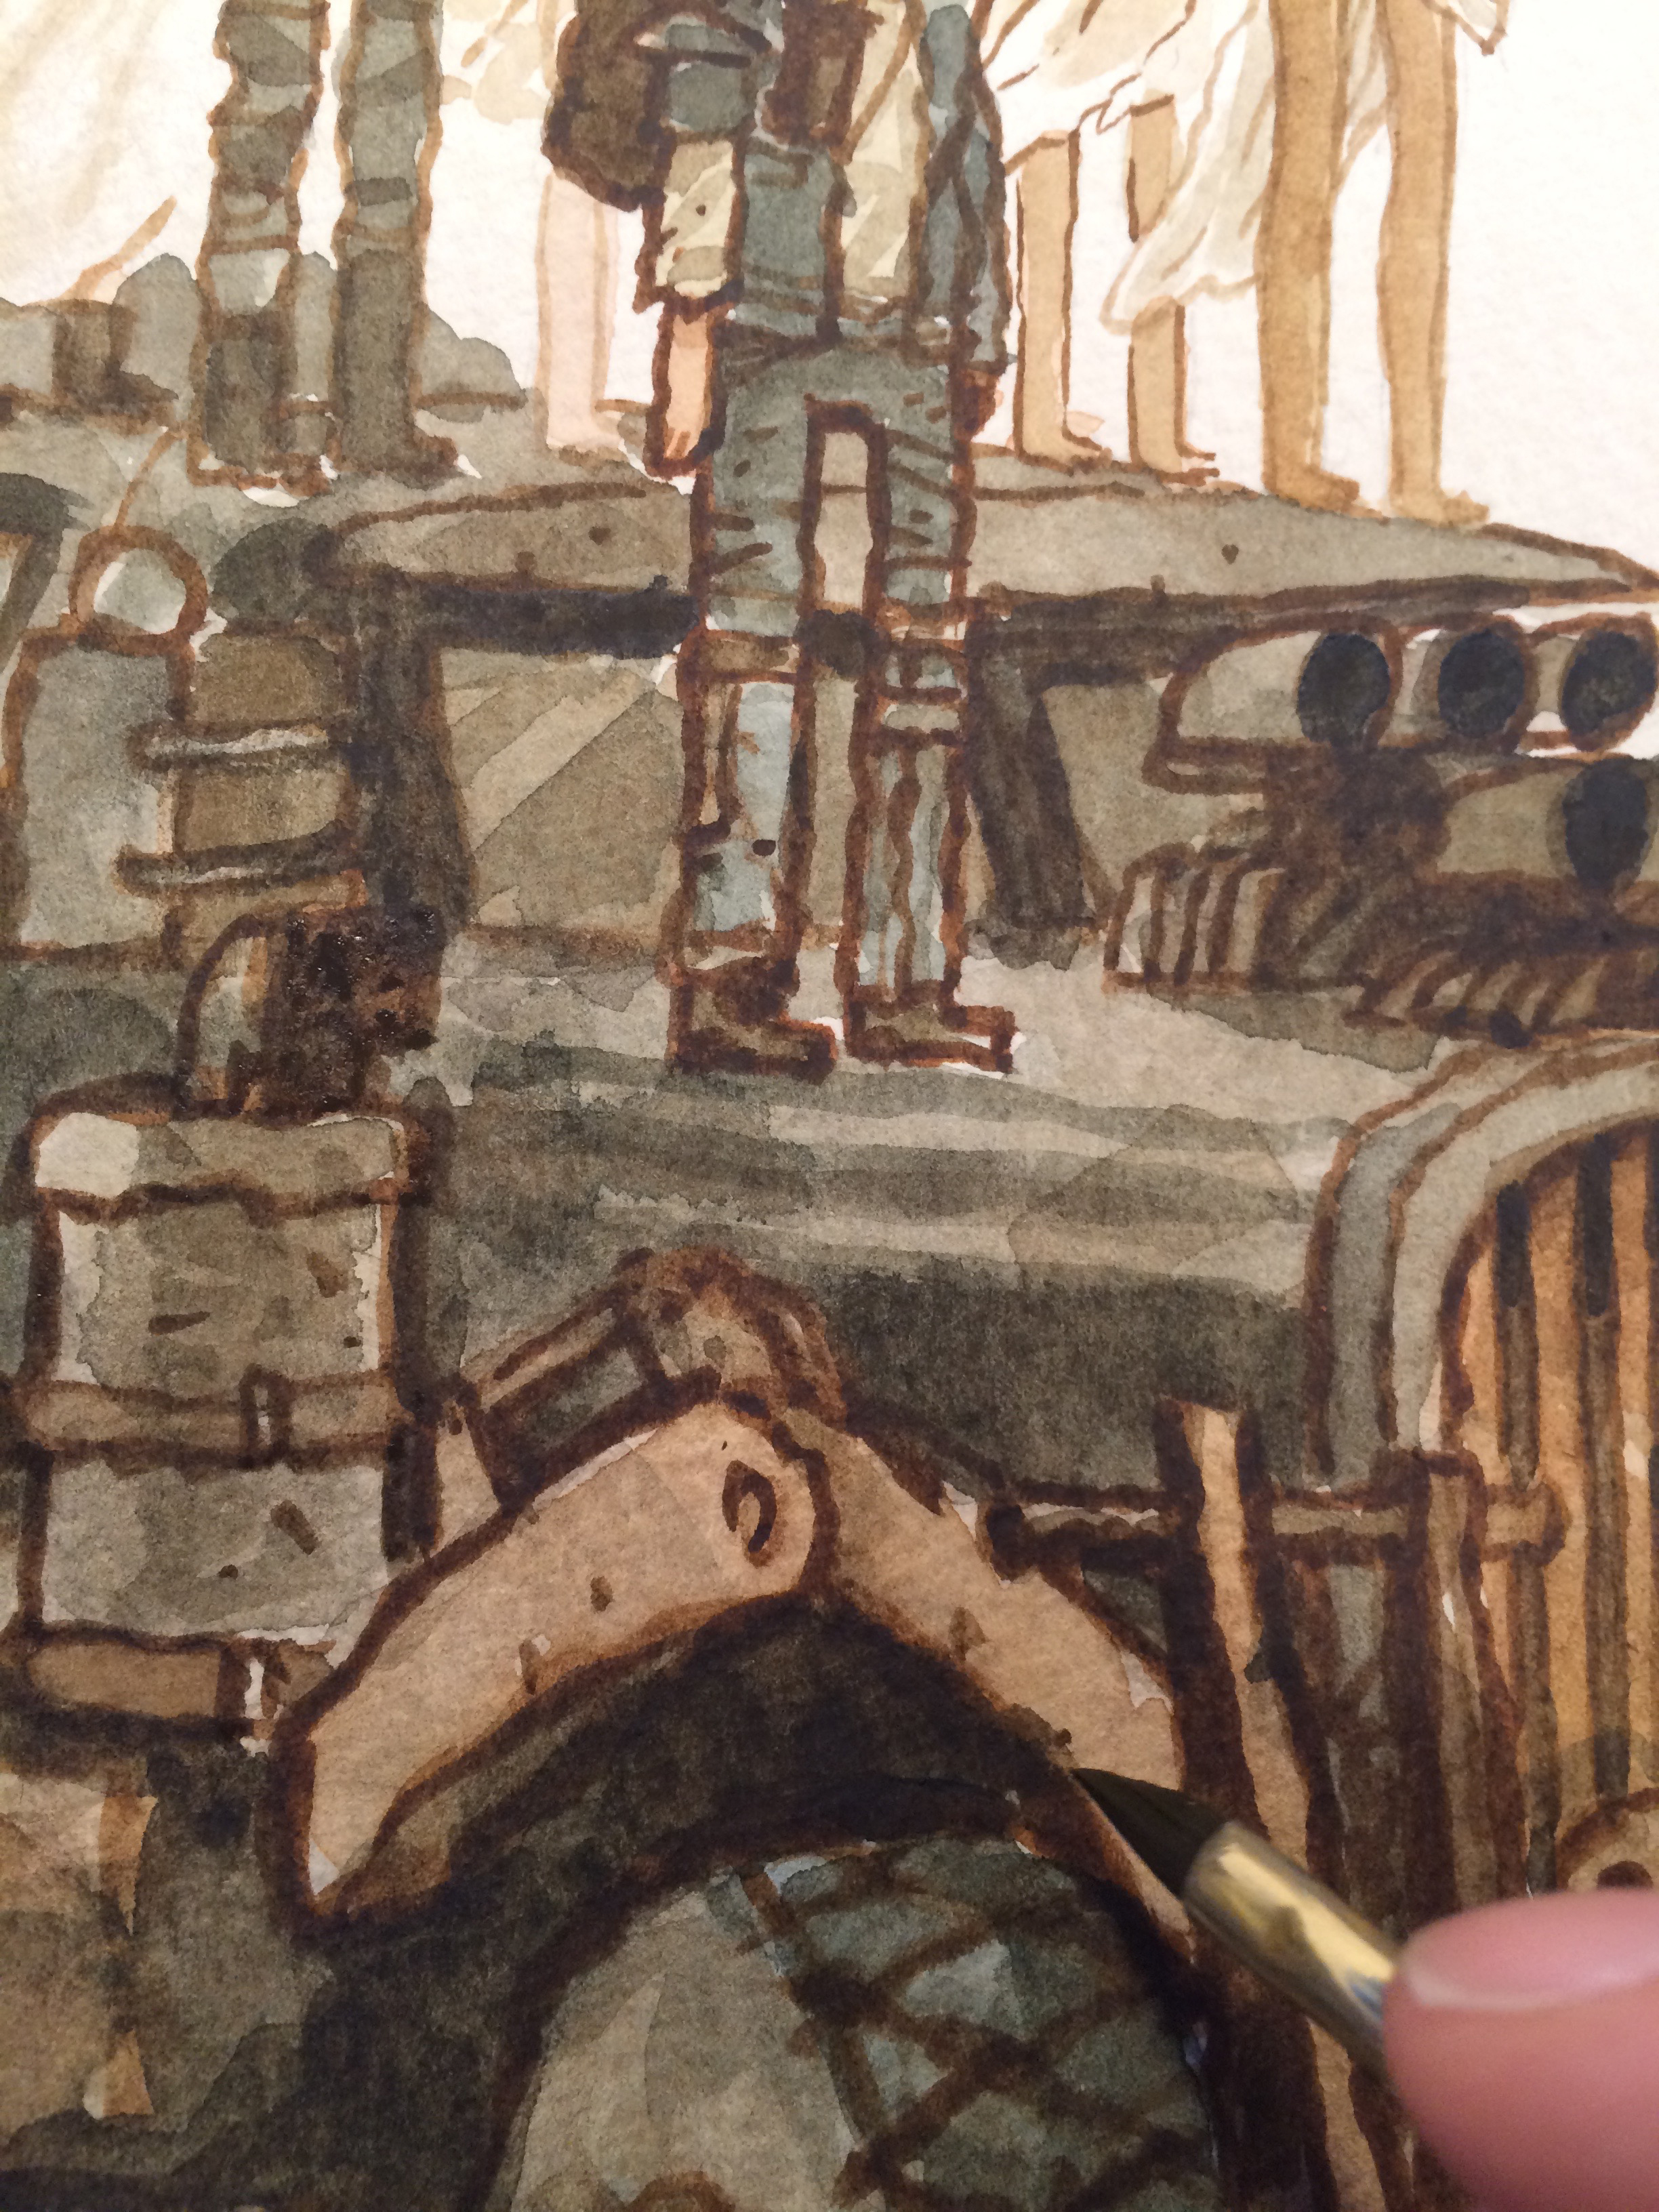 I can finally figure out what certain parts look like. Like this arm here that raises the scoop plow on the front of the War Rig. These are things i wouldn't have ever noticed had i not painted these things! i like to discover those little things in the designs.